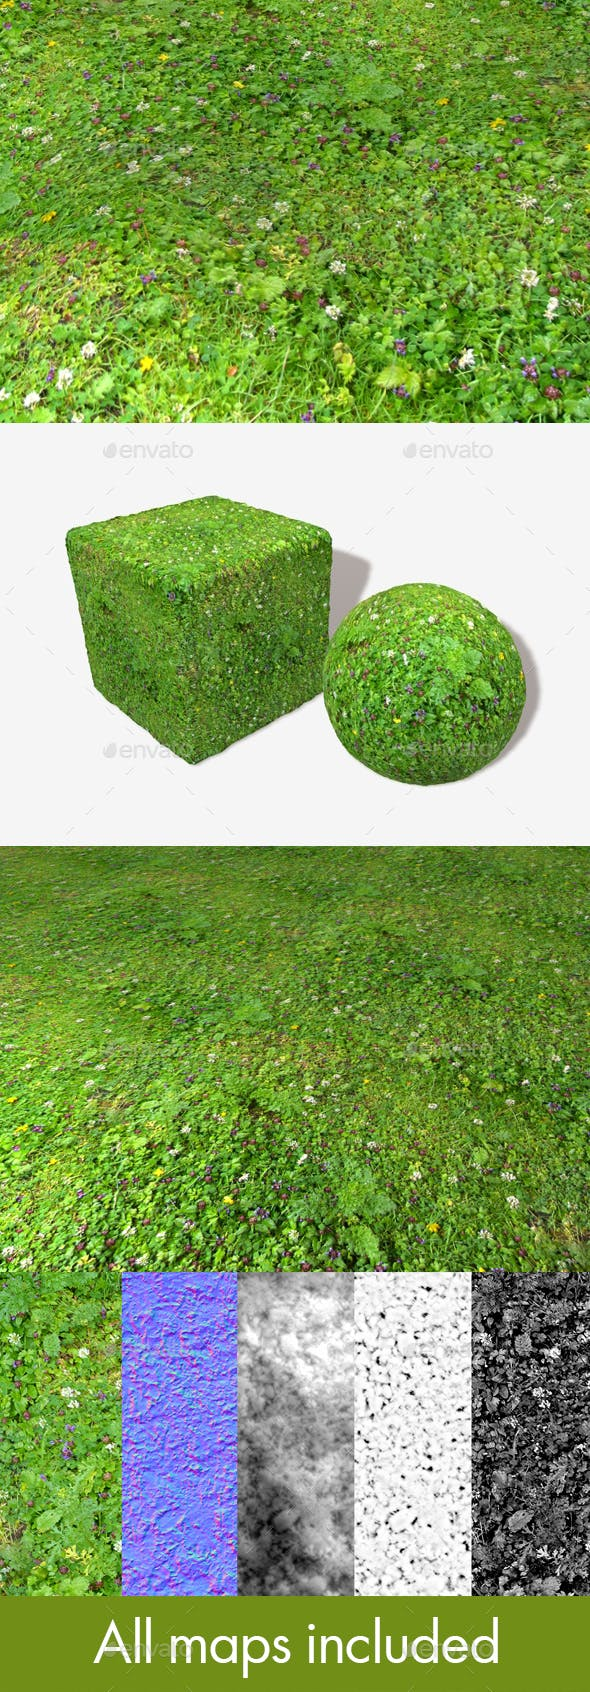 Meadow Flowers Seamless Texture - 3DOcean Item for Sale